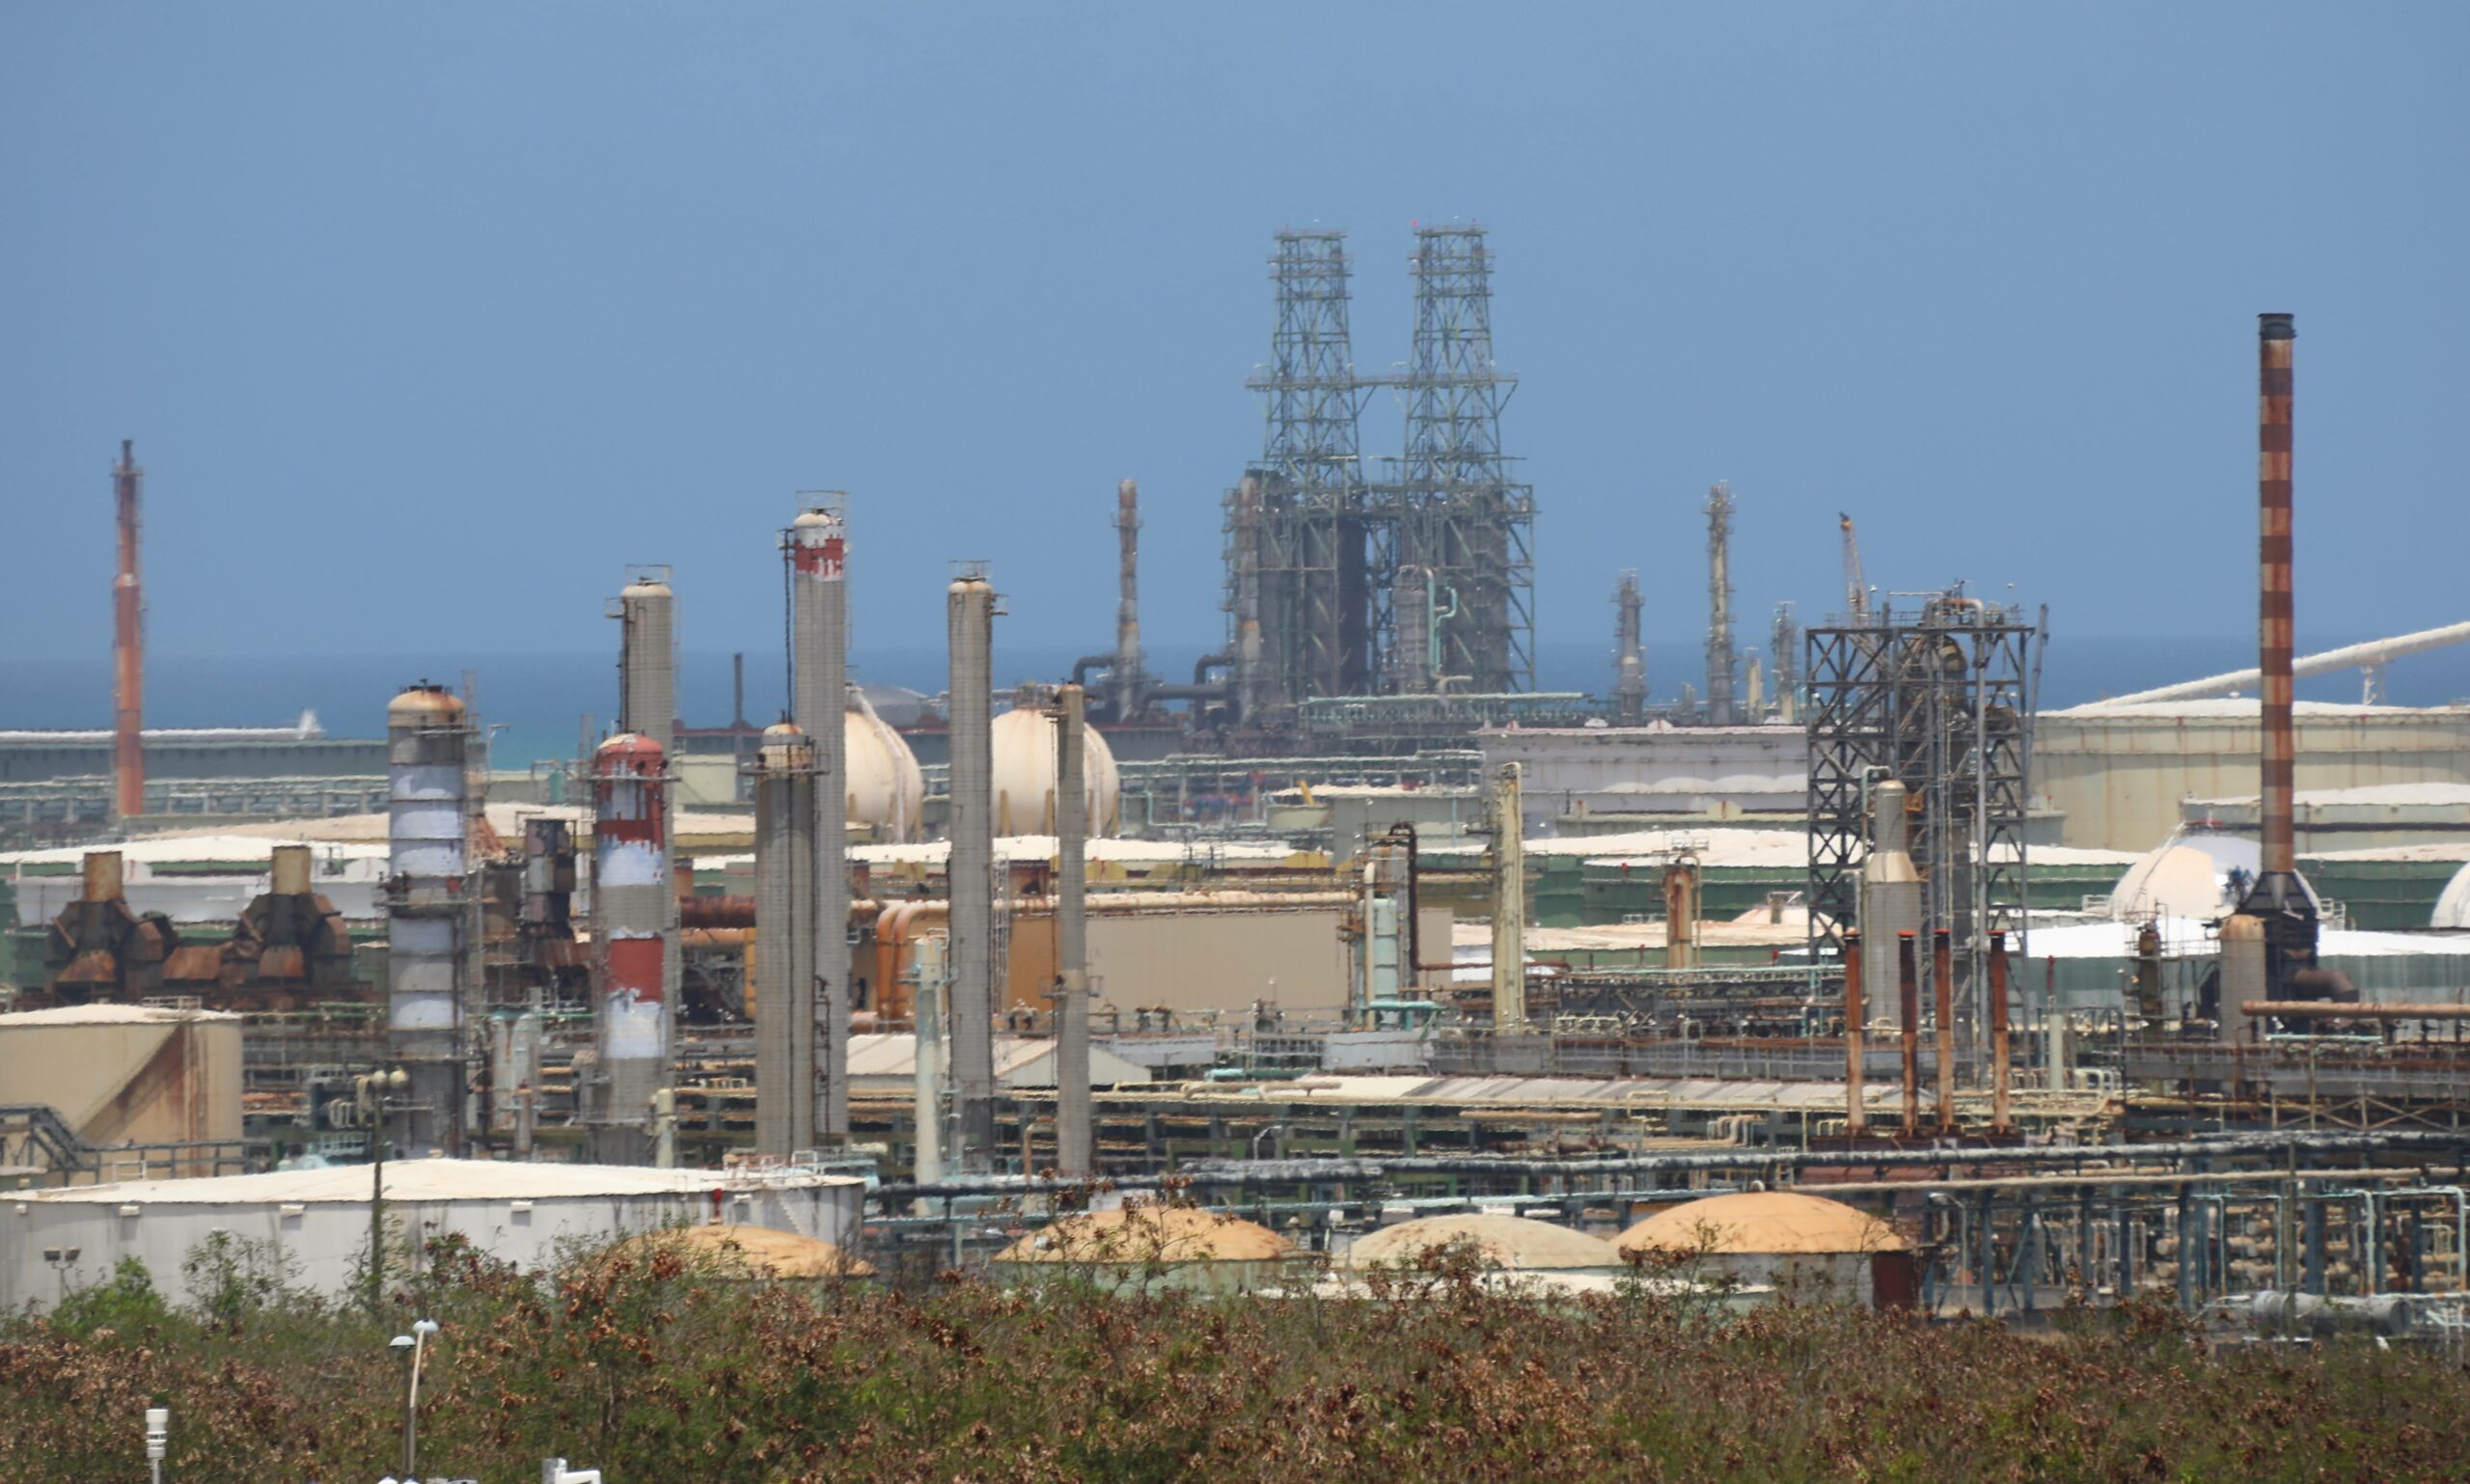 The twin towers of the coker at the sprawling Limetree Bay refinery in St. Croix. Since February when the refinery restarted after an eight-year hiatus, problems with the coker and other processing units have created massive amounts of pressure inside the refinery, causing flares of oil and toxic emissions that have sickened downwind neighbors within seven miles. Credit: Patricia Borns